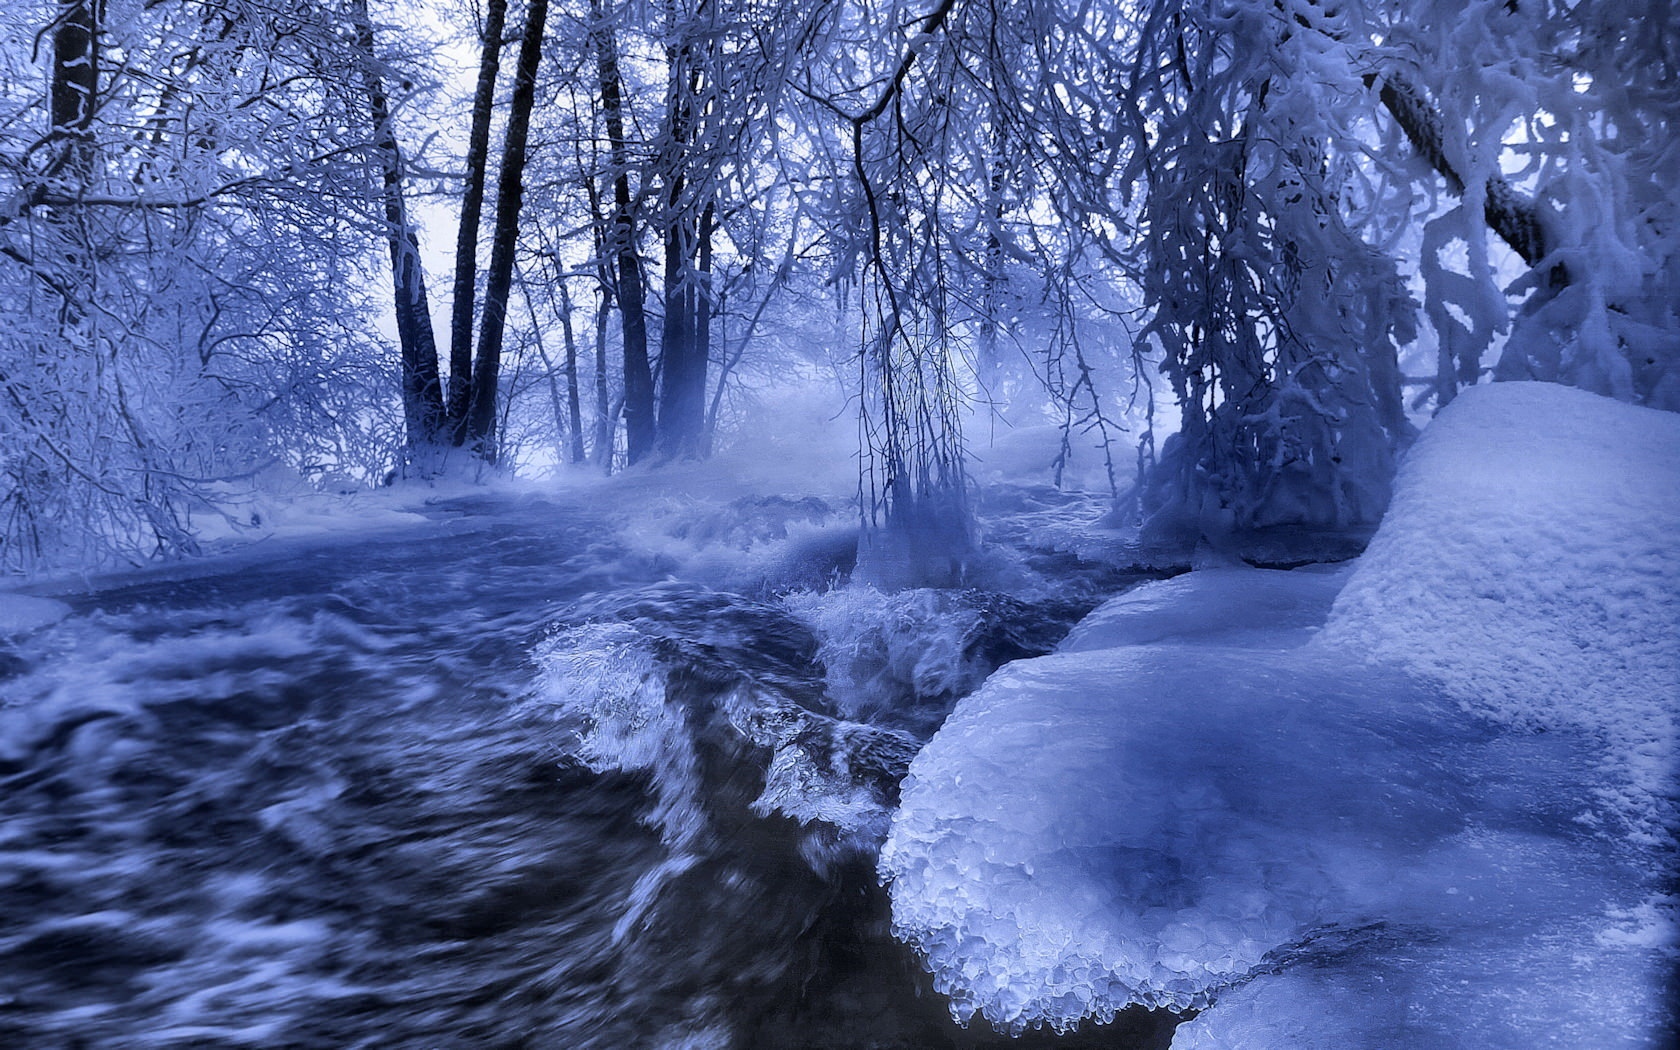 Winter Scene Wallpaper 2017